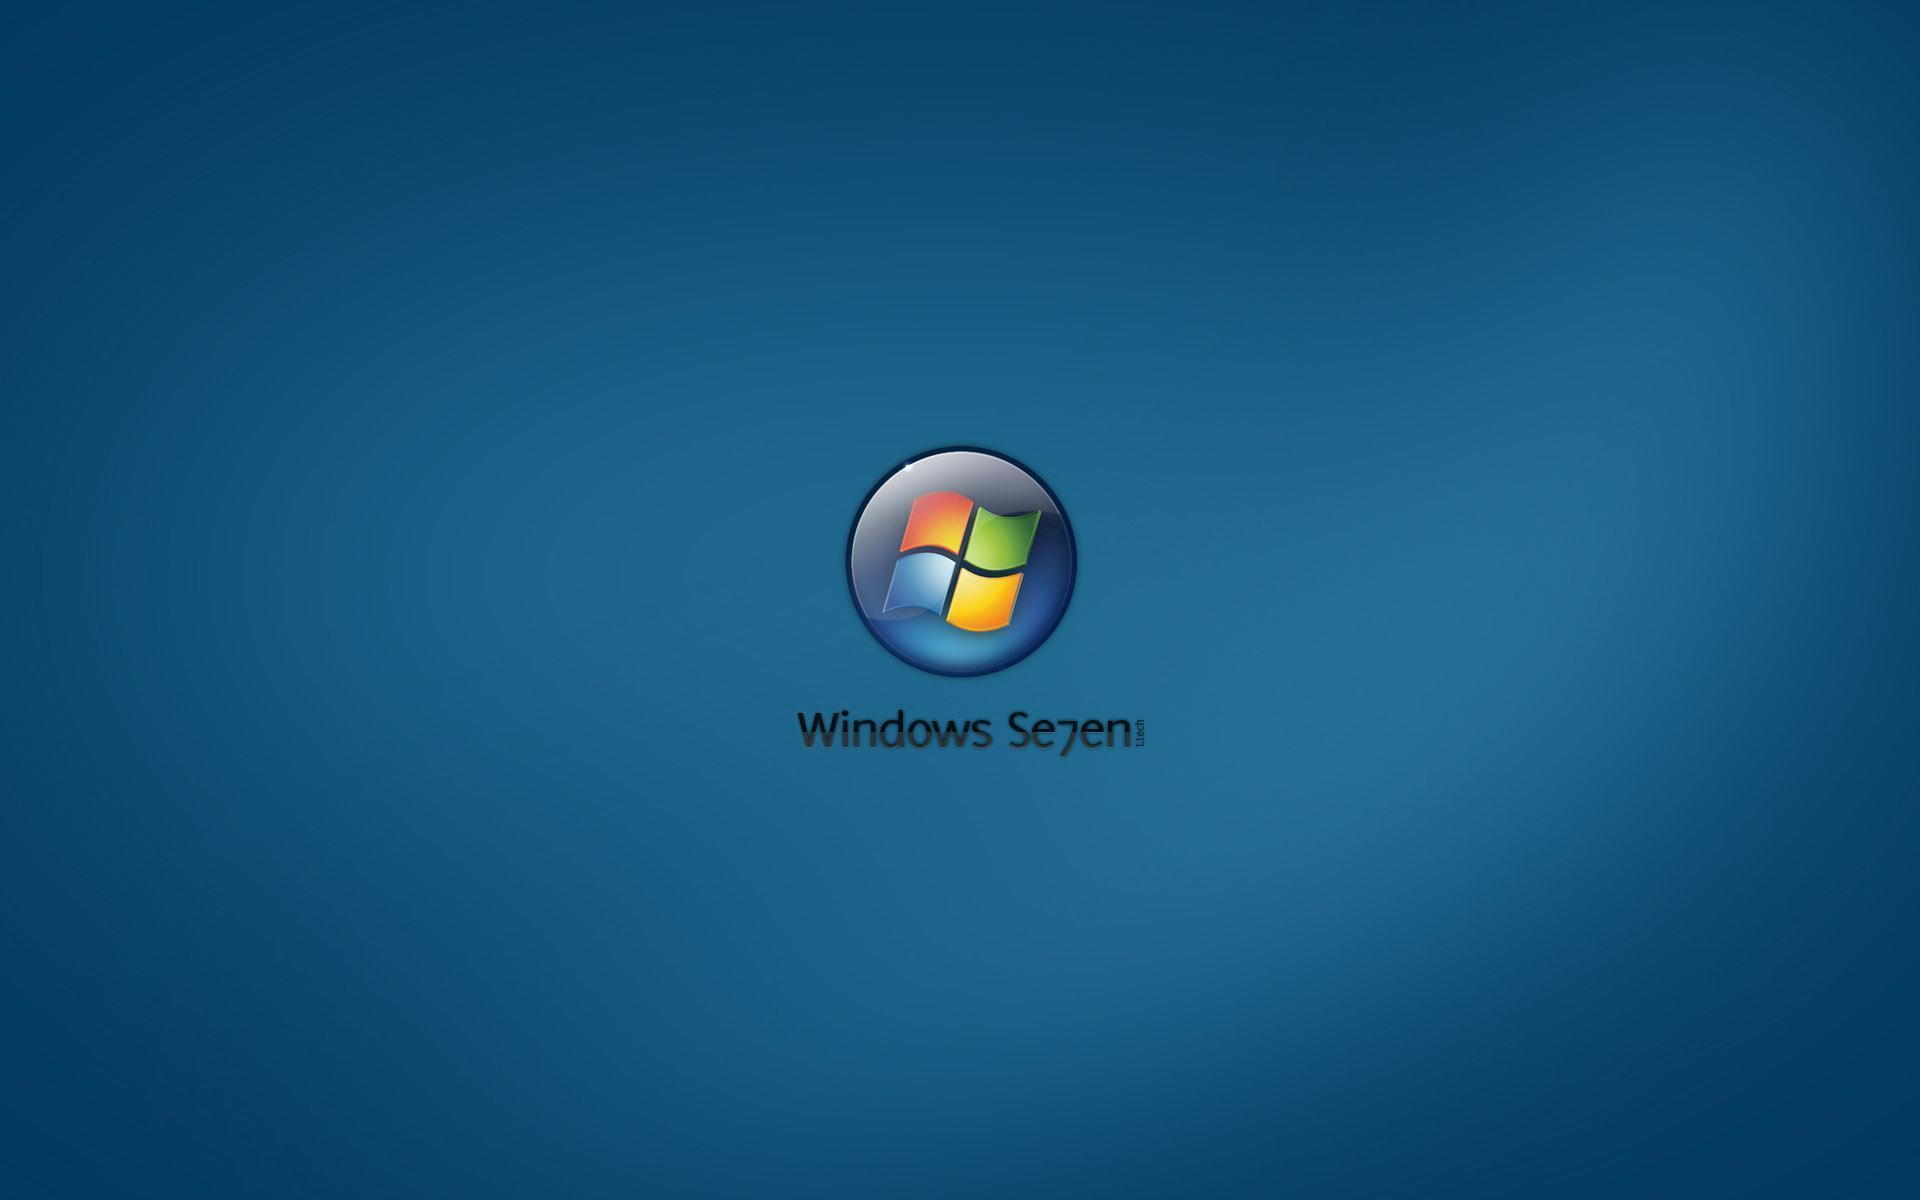 windows 7 official wallpapers wallpaper cave